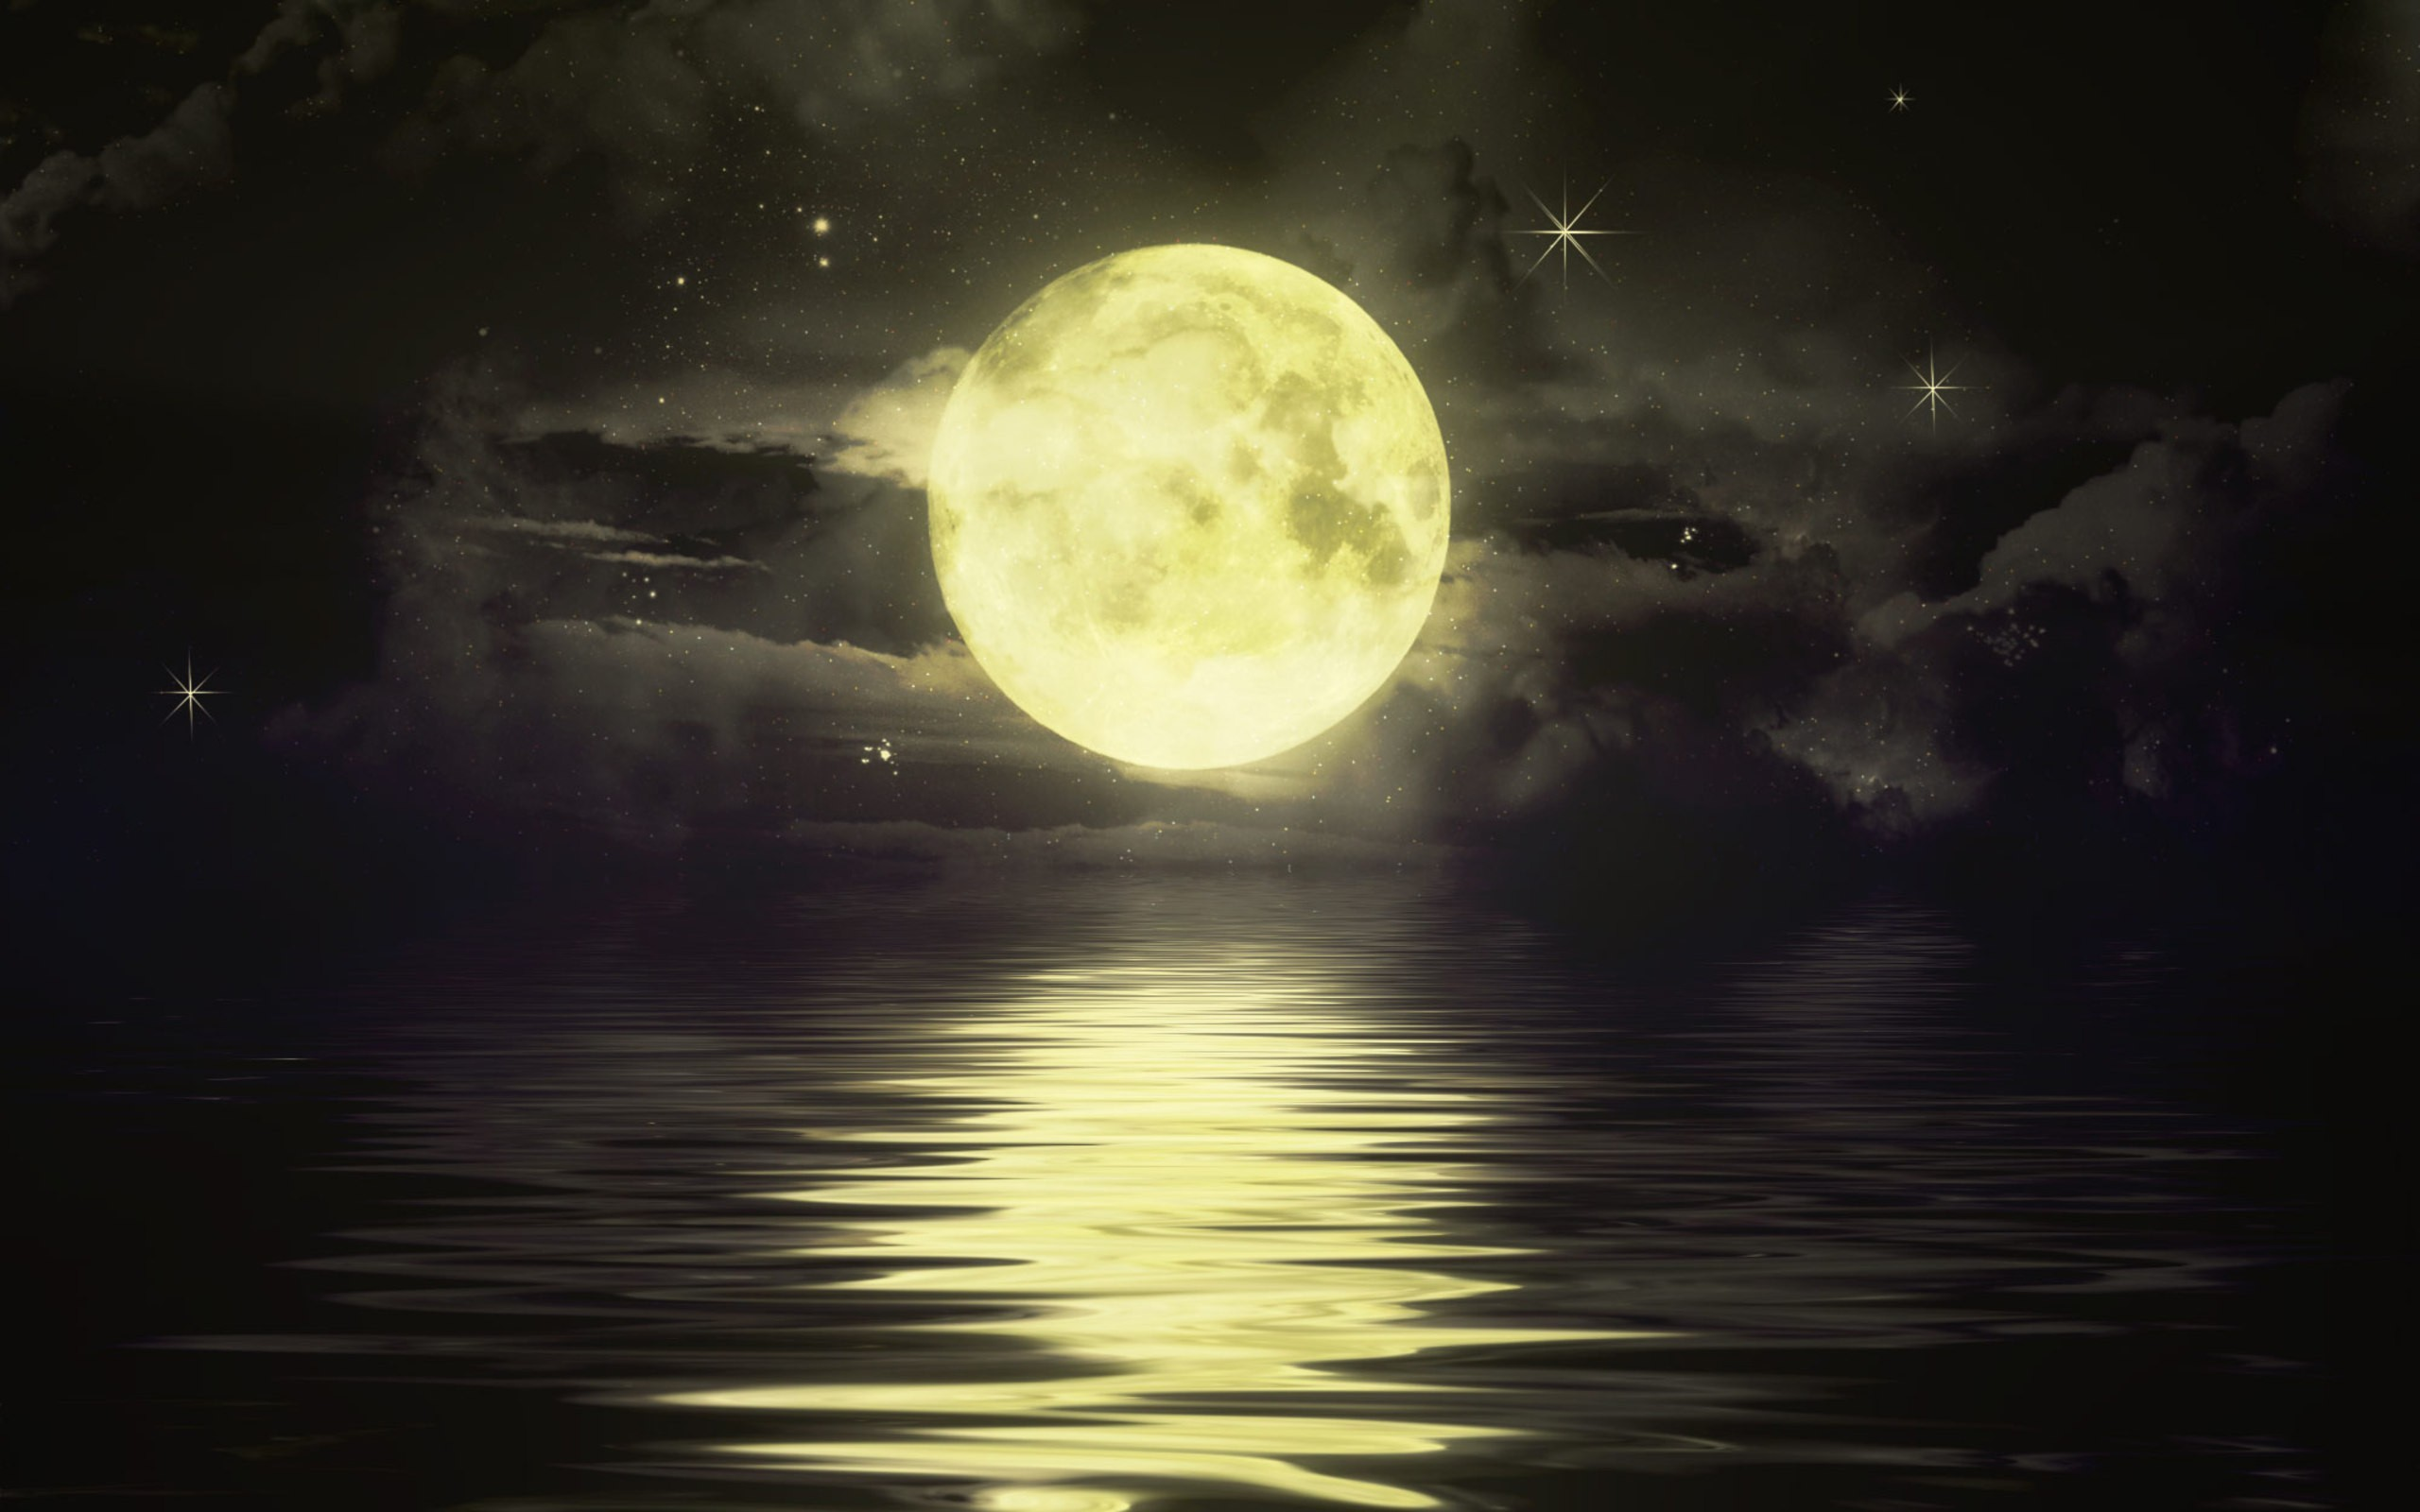 water night Stars moon HD Wallpaper